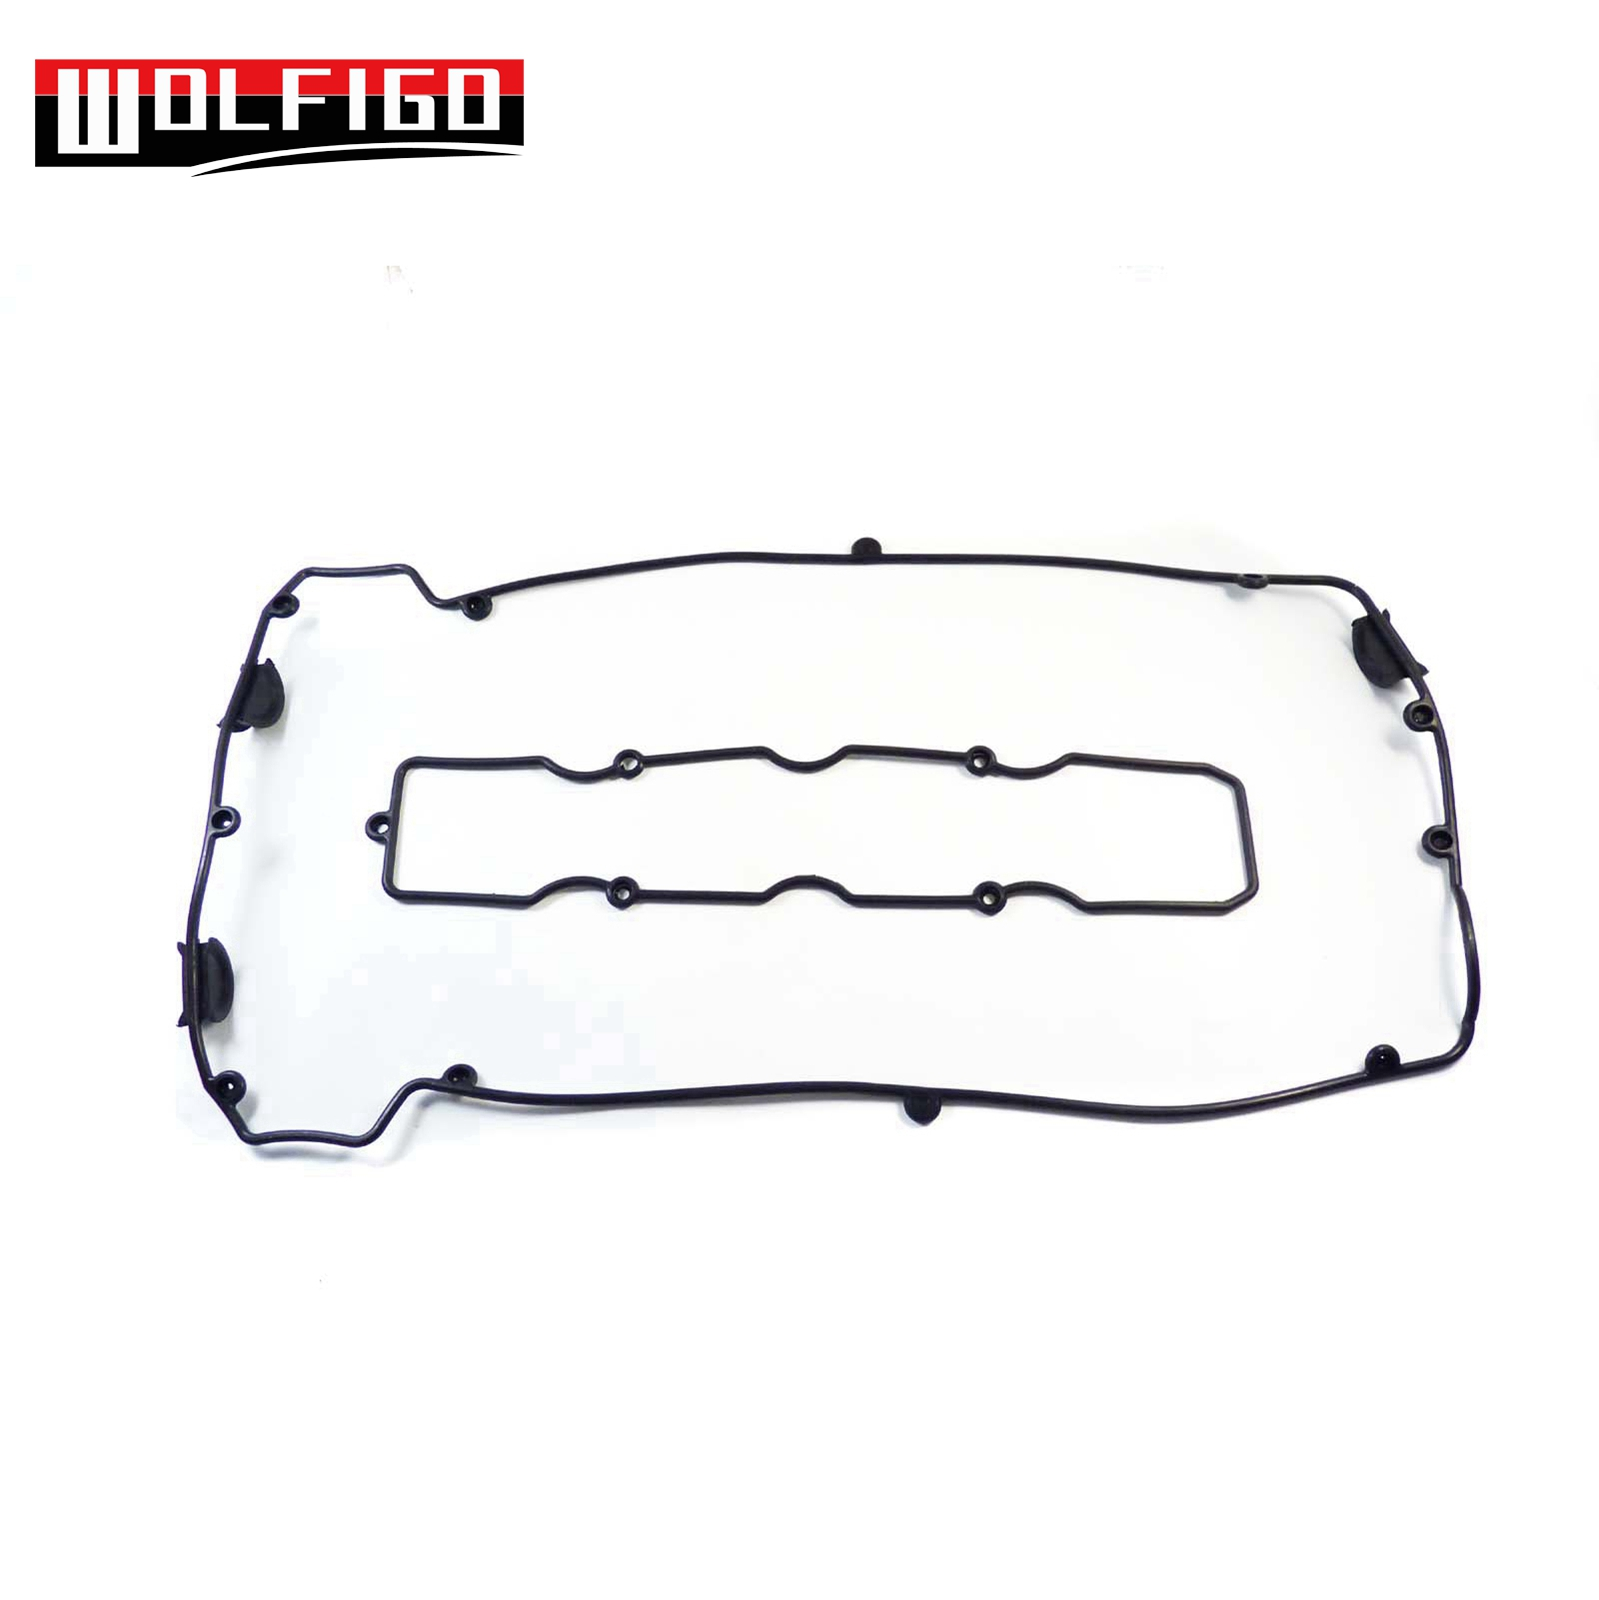 Wolfigo New Engine Valve Cover Gasket Set For Saab 9 3 9 5